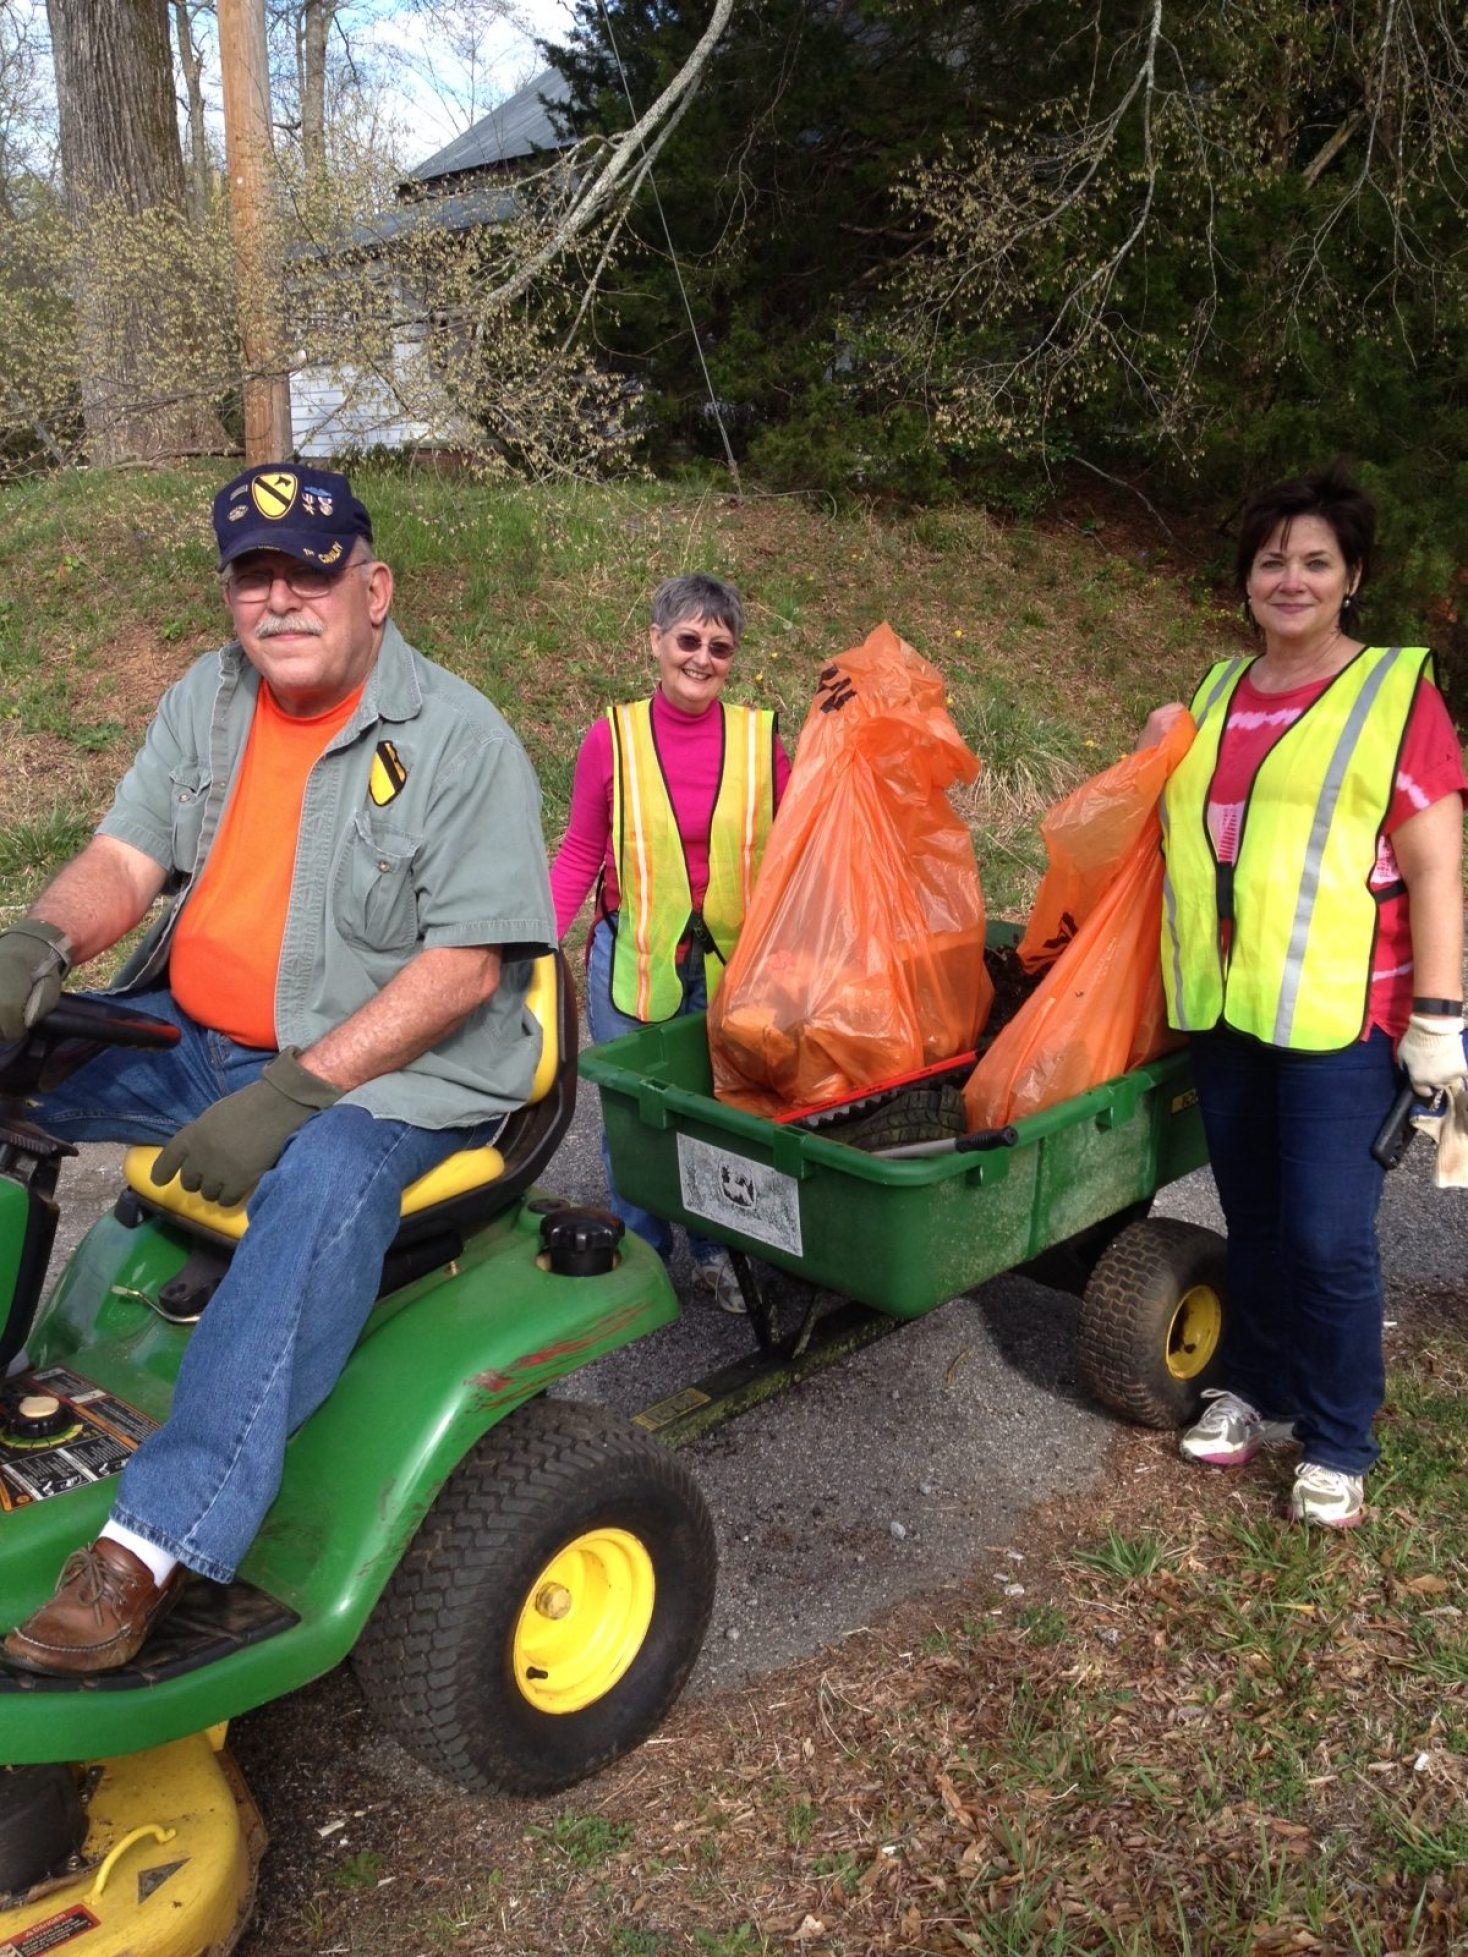 Volunteers are needed for our Spring Town-Wide Cleanup